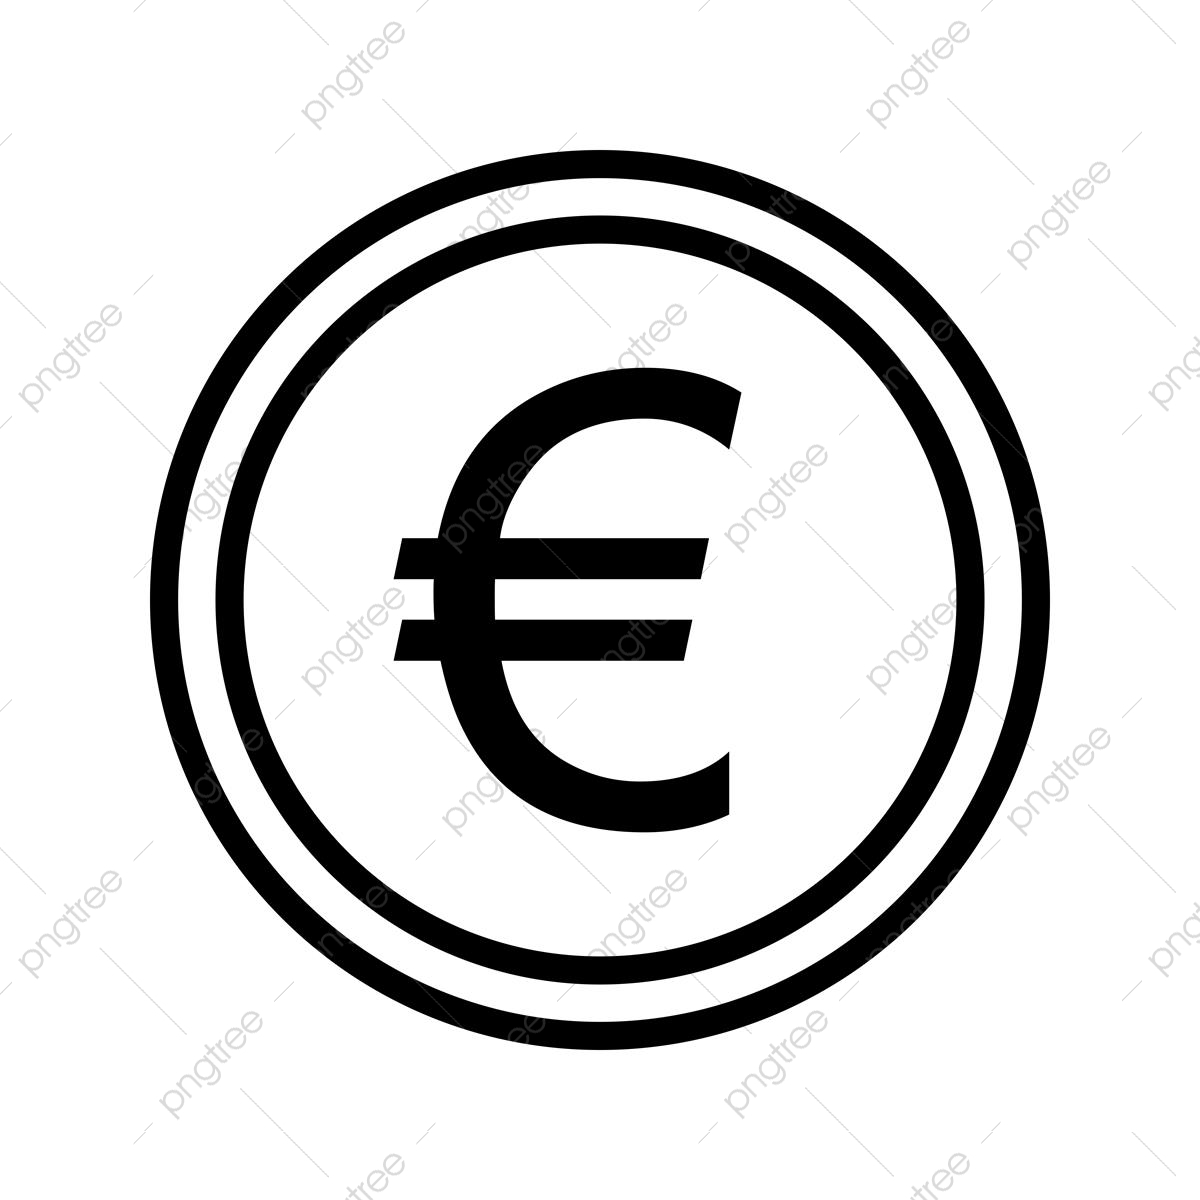 euros png images vector and psd files free download on pngtree https pngtree com freepng euro coin line icon 3695222 html